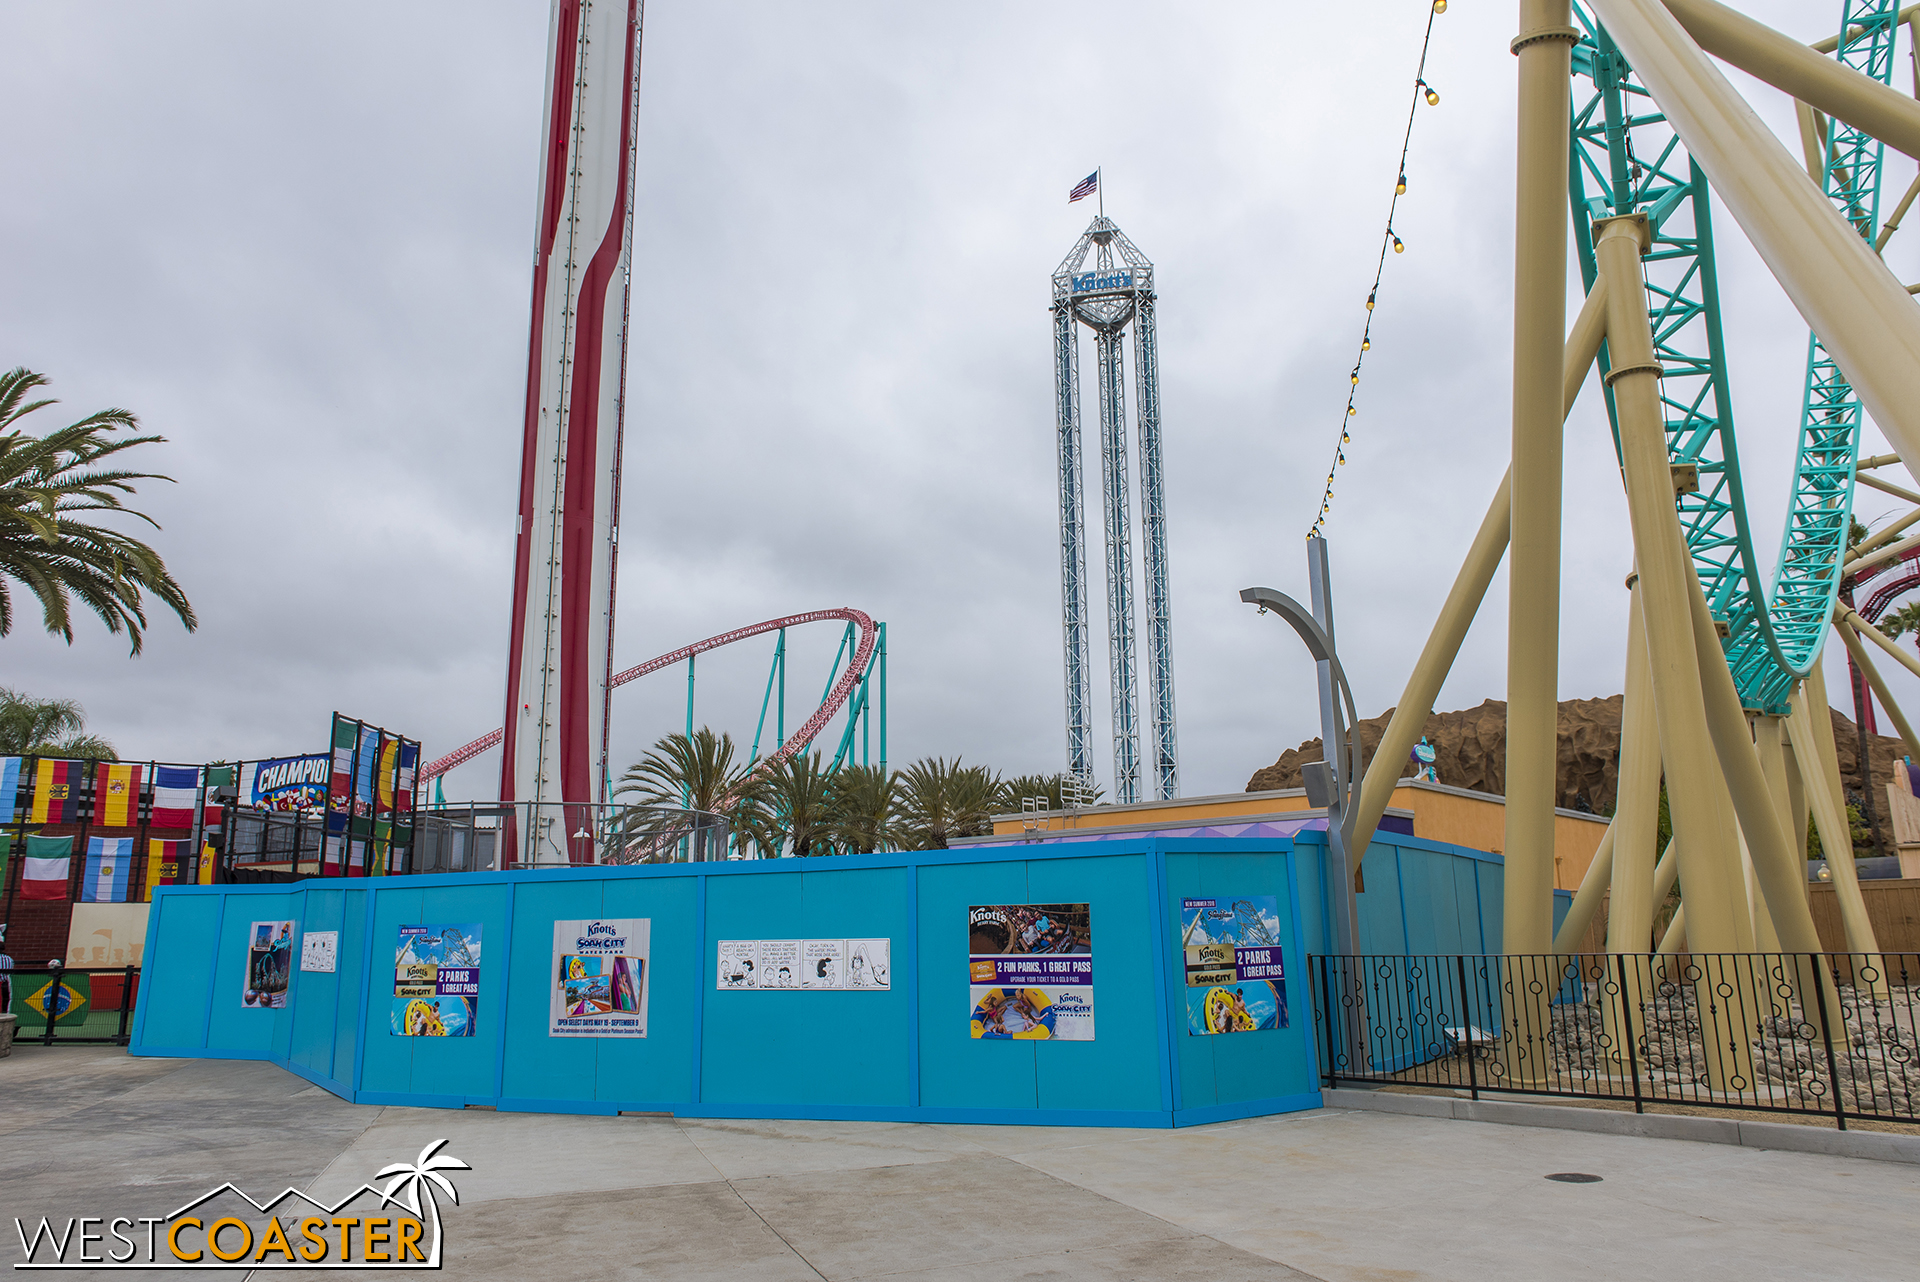 A little bit of the HangTime construction footprint remains behind work walls, as the park constructs a new footing and pad for the very slightly relocated Wipeout ride, next to the Sky Cabin.